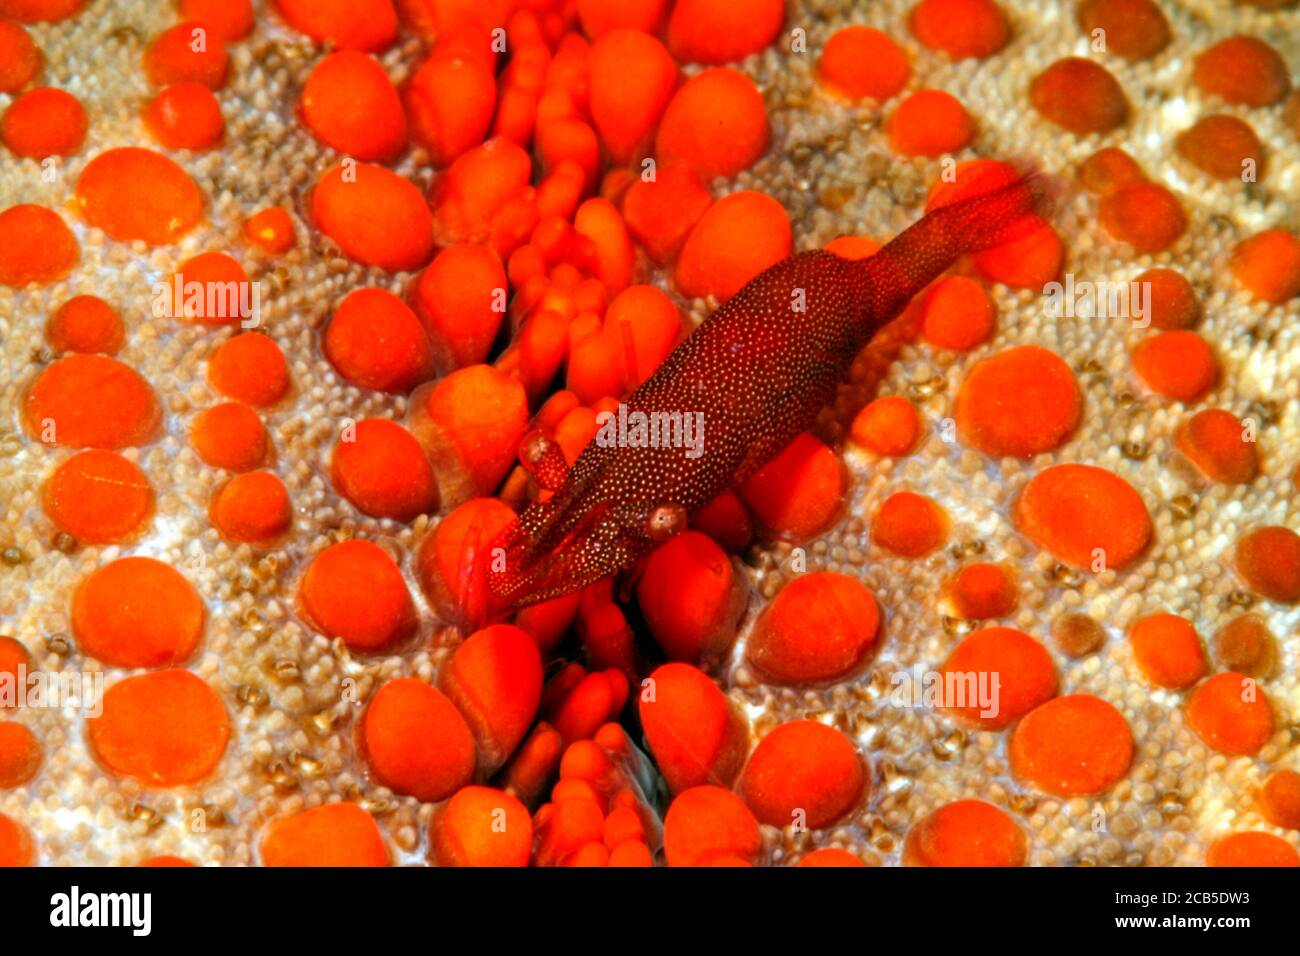 commensal-shrimpzenopontonia-soror-previously-described-as-periclimenes-soror-shrimp-is-commensal-on-sea-stars-and-takes-the-color-of-the-host-2CB5DW3.jpg